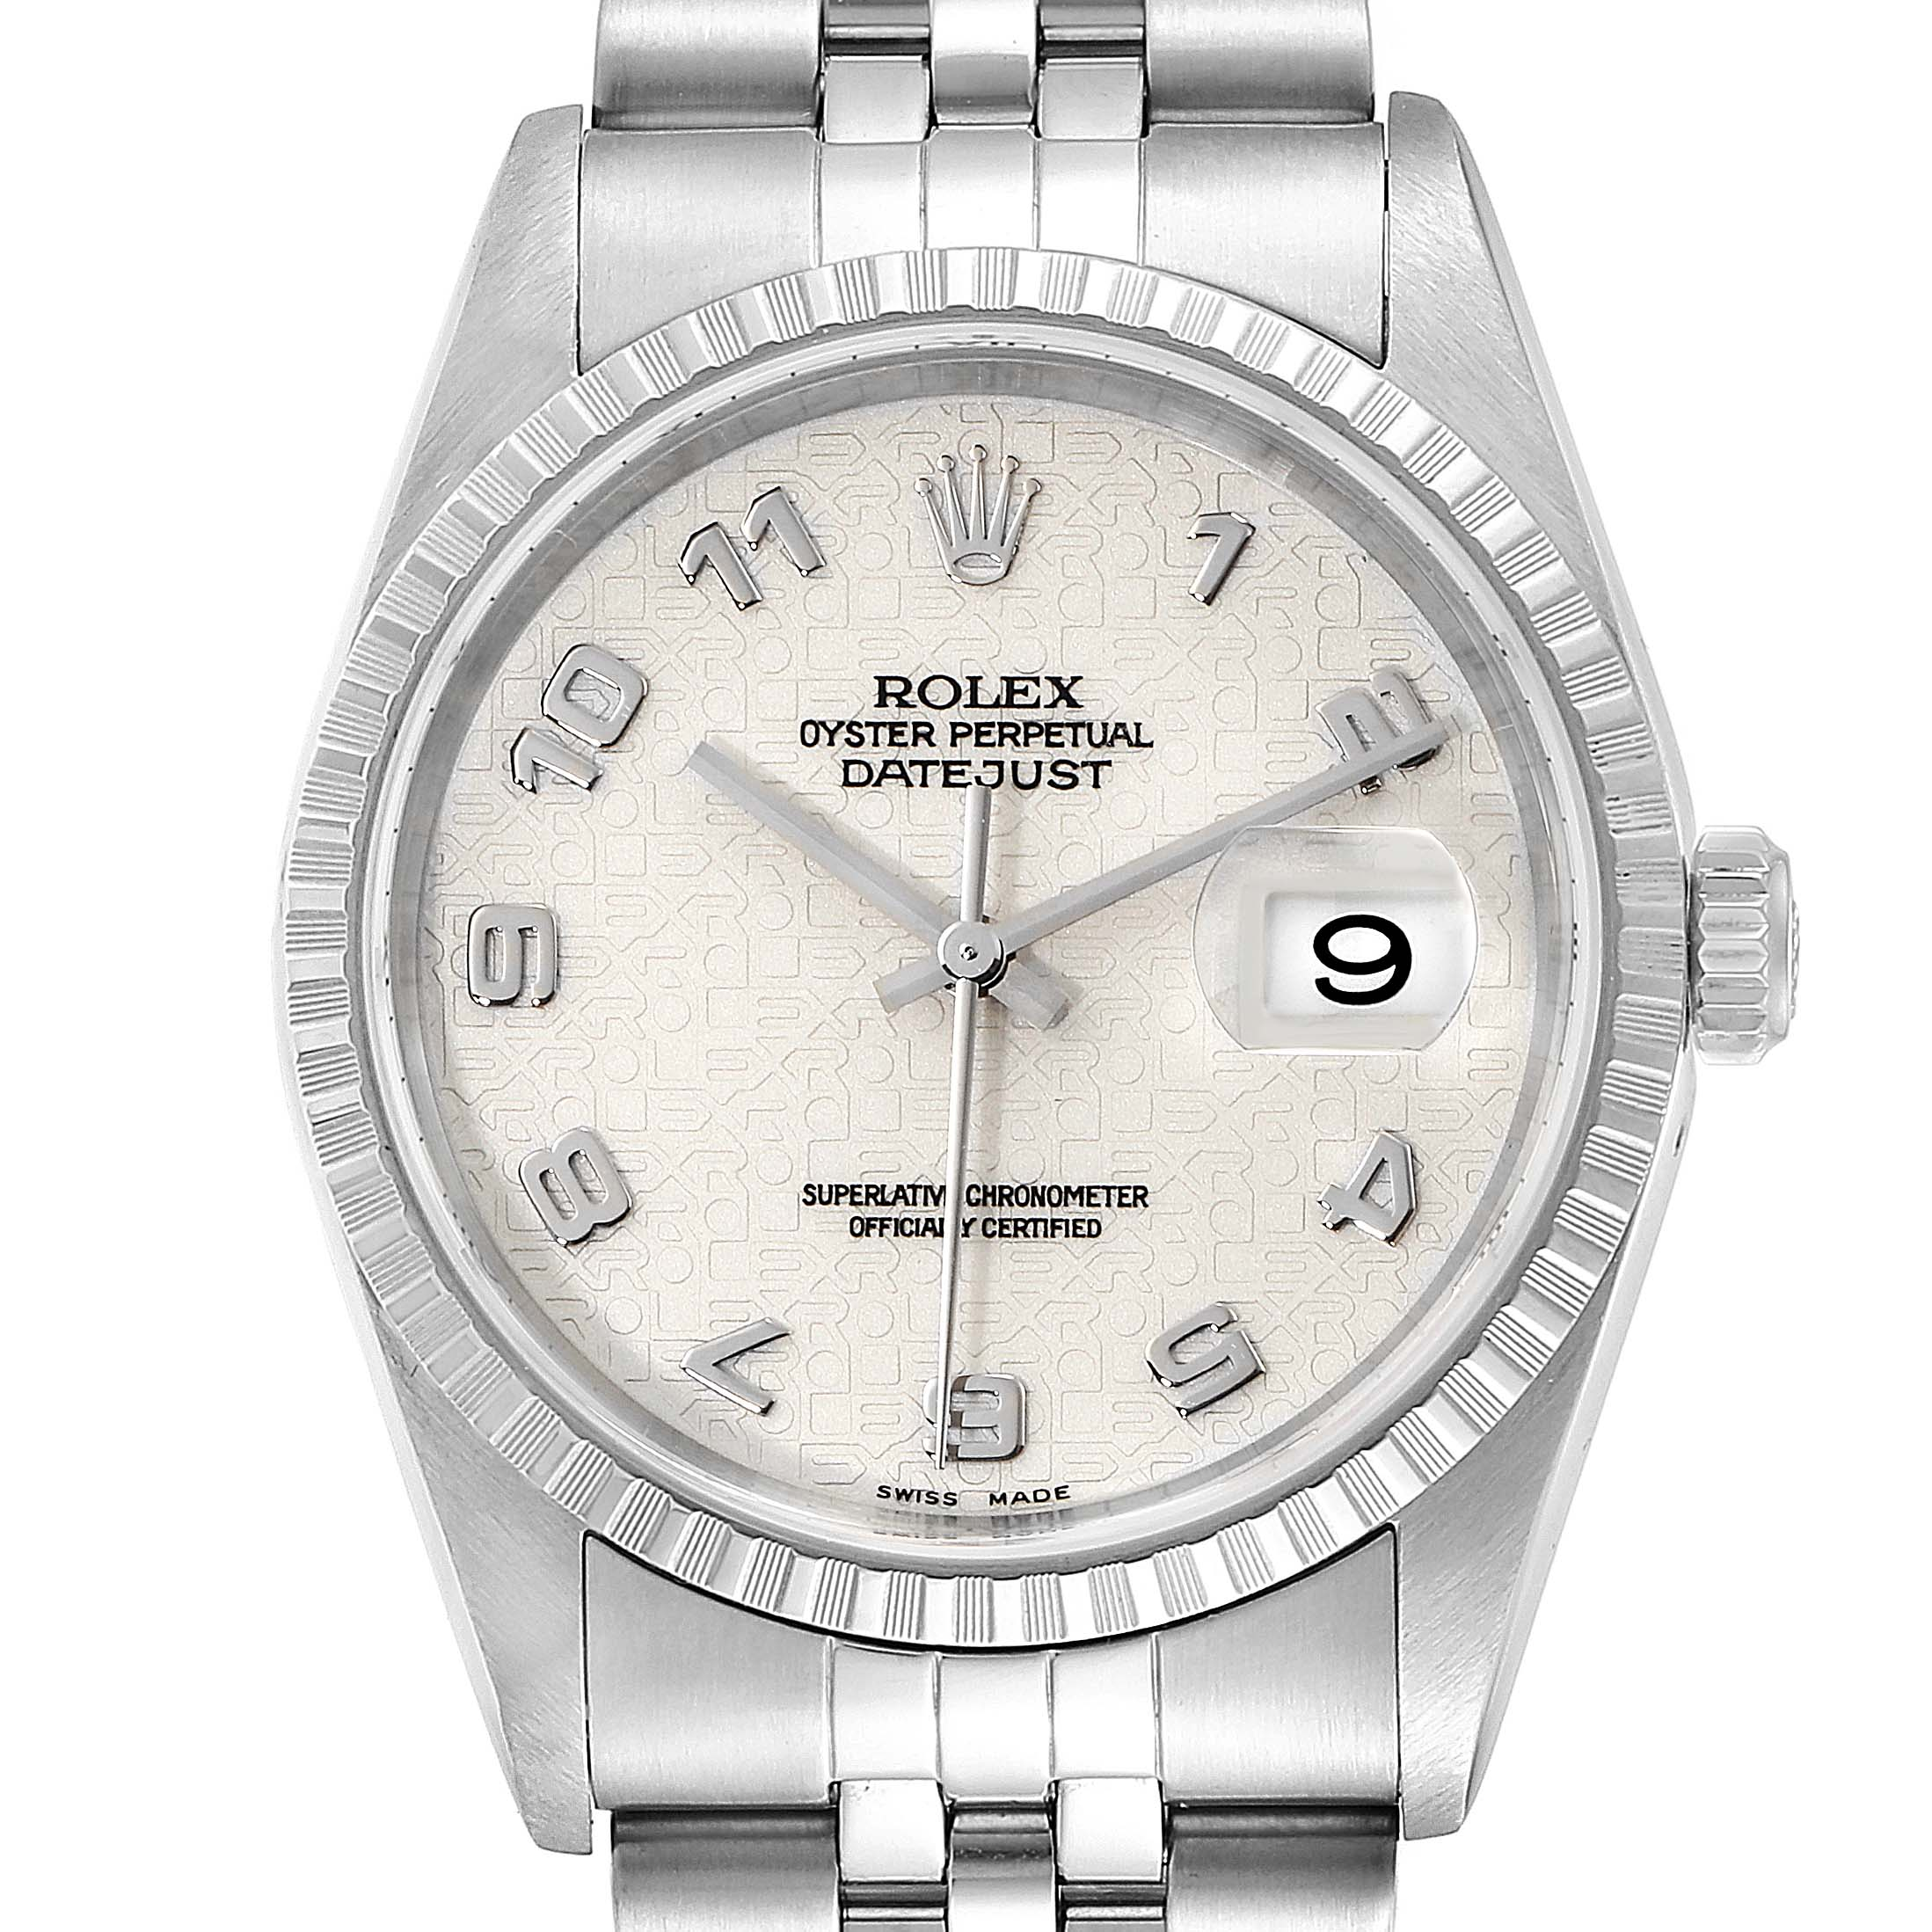 Photo of Rolex Datejust Anniversary Dial Jubilee Bracelet Steel Mens Watch 16220